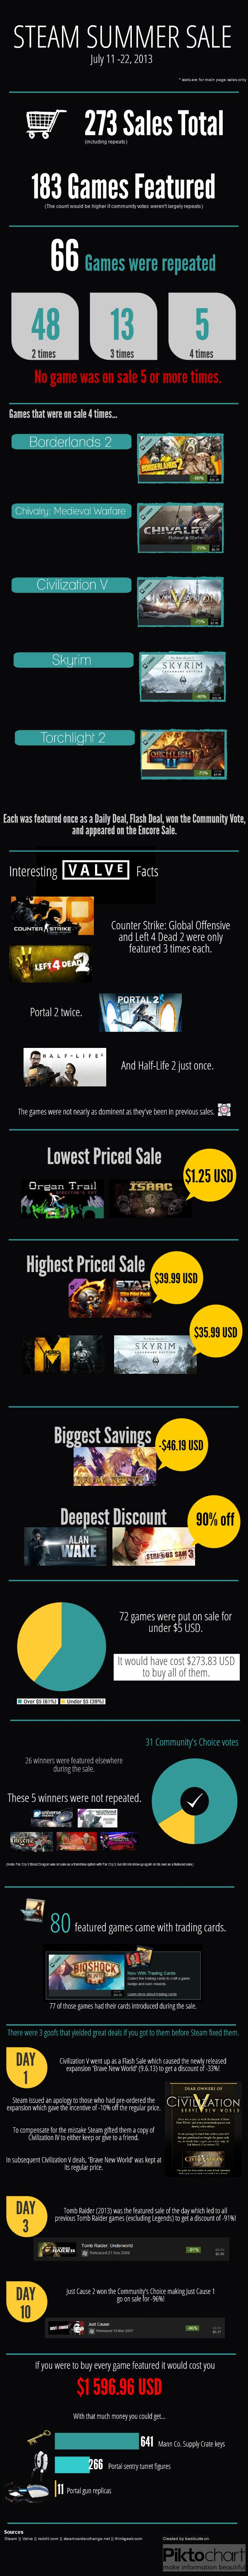 steam_summer_sale_infographic